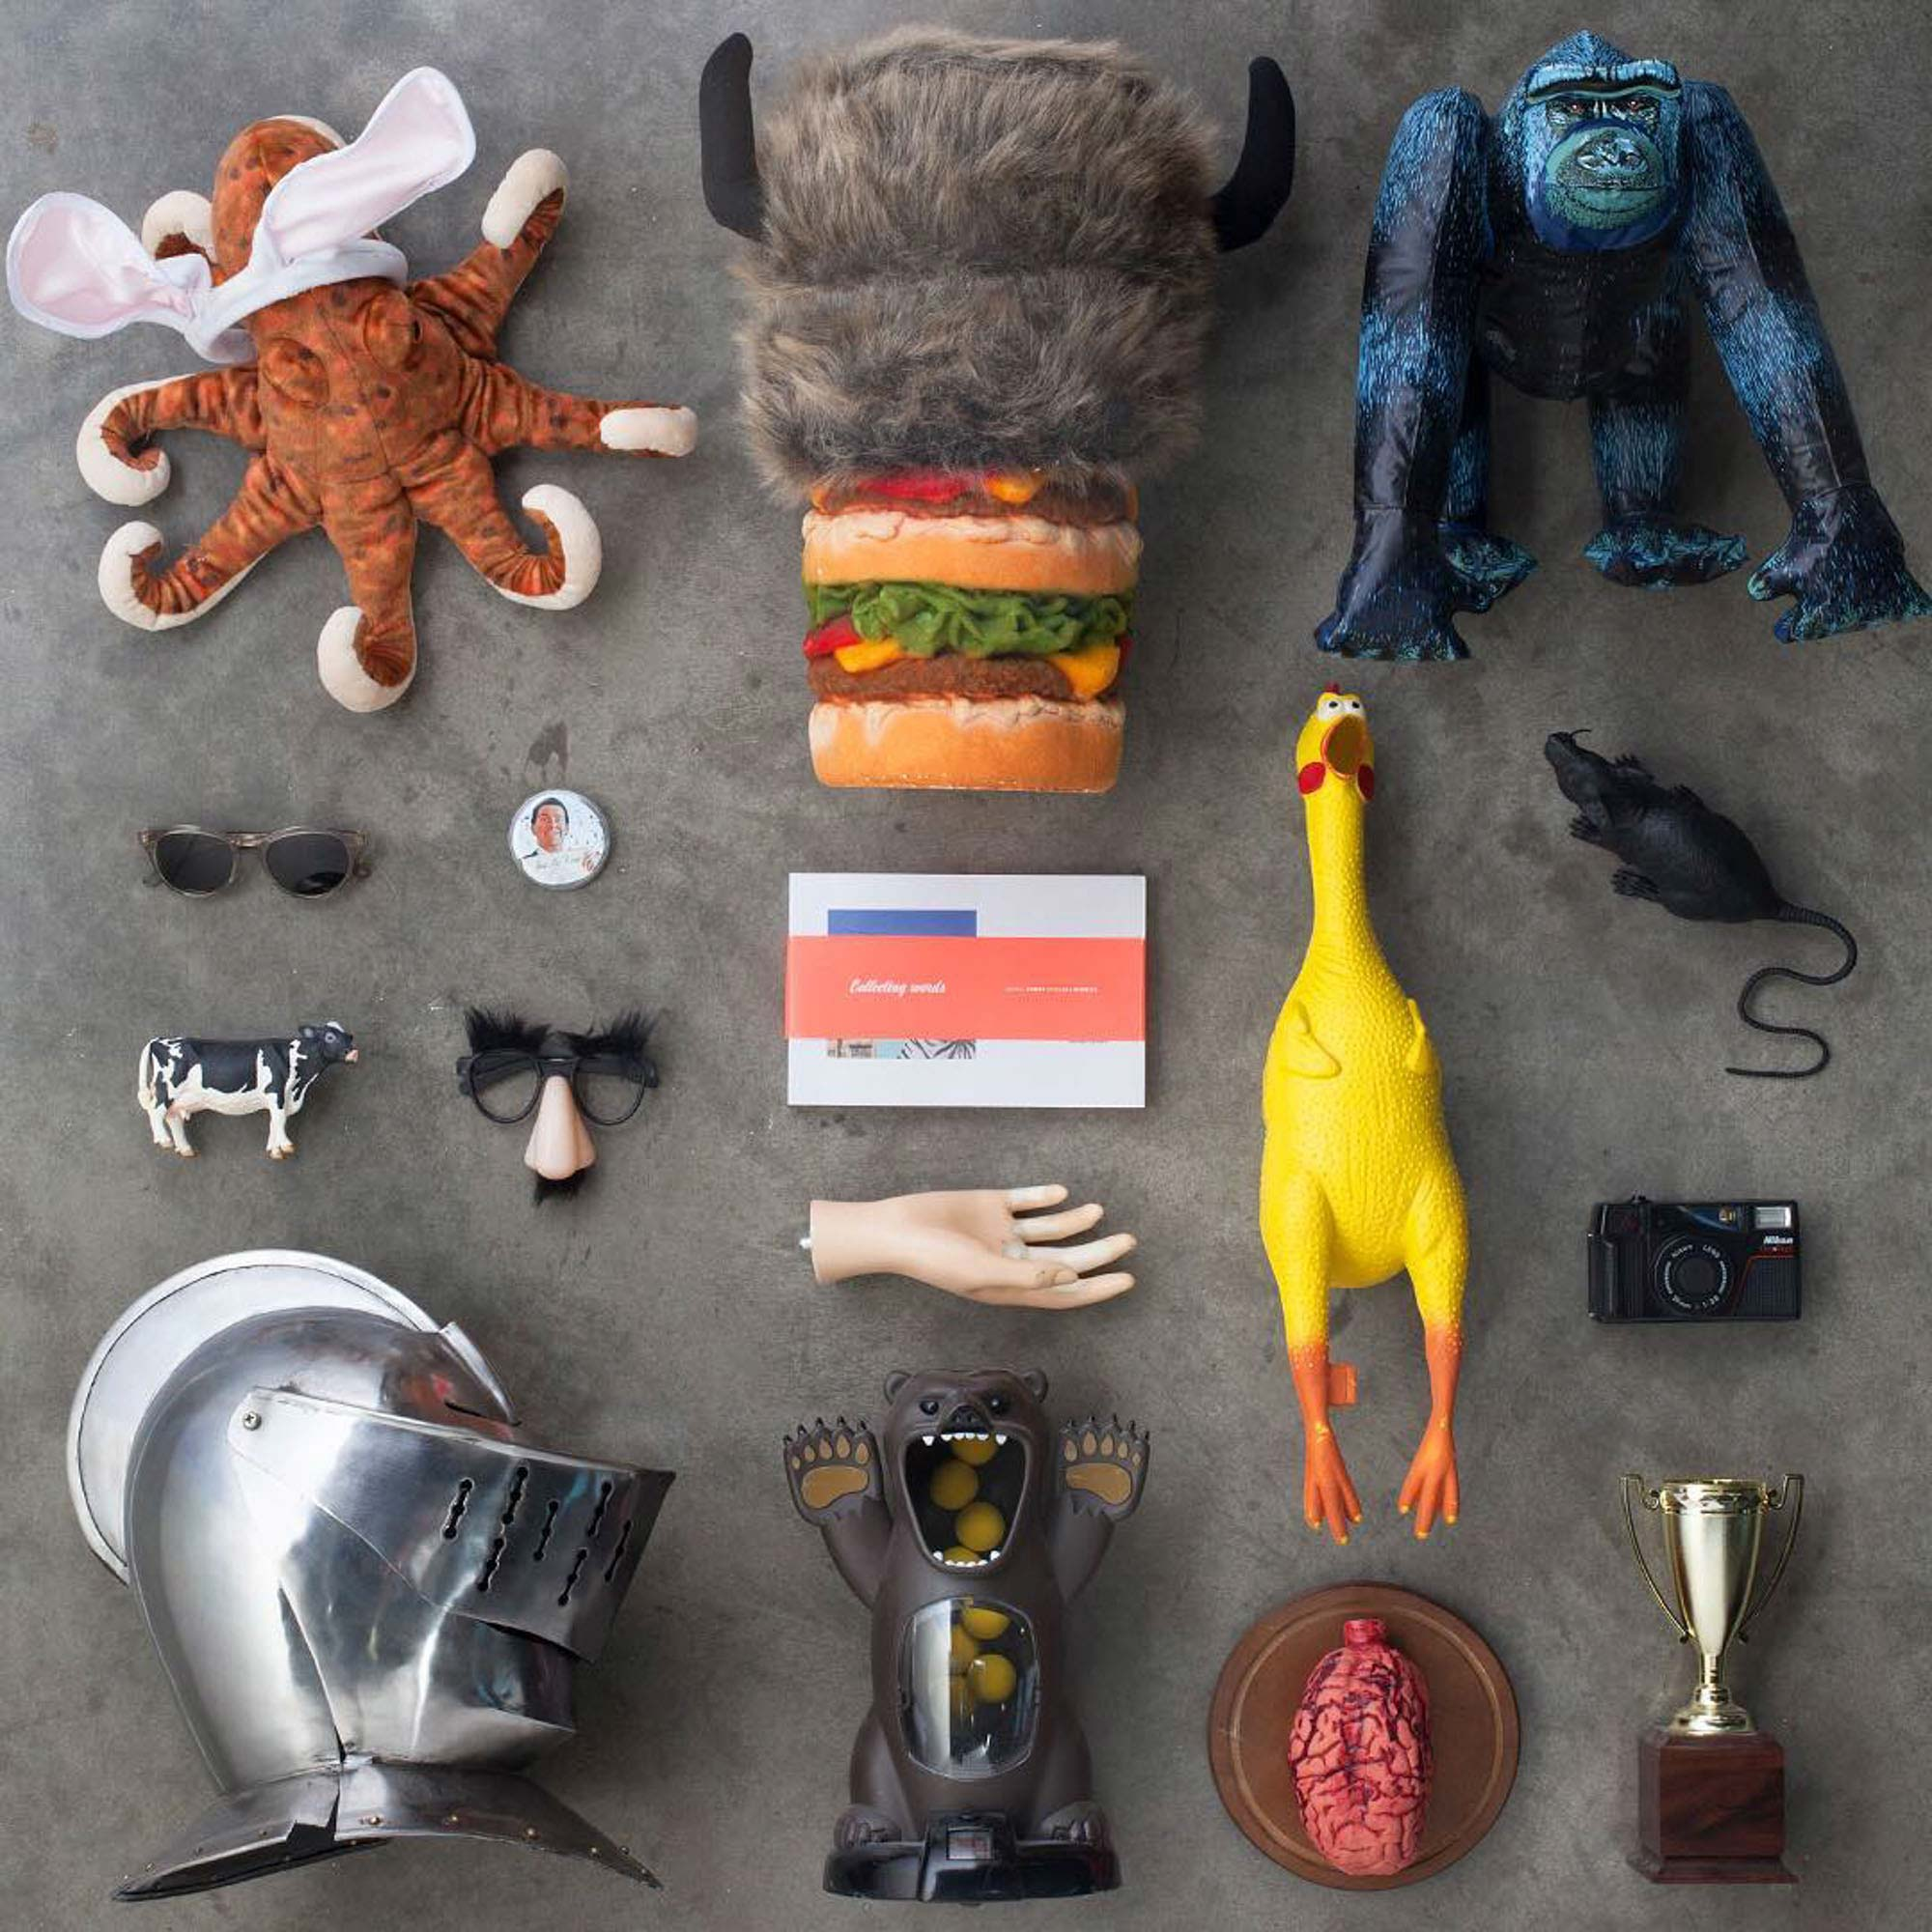 Knolling photography of items found on an art director's desk | Still Life Photography | shot in Boulder, Colorado for Crispin Porter + Bogusky